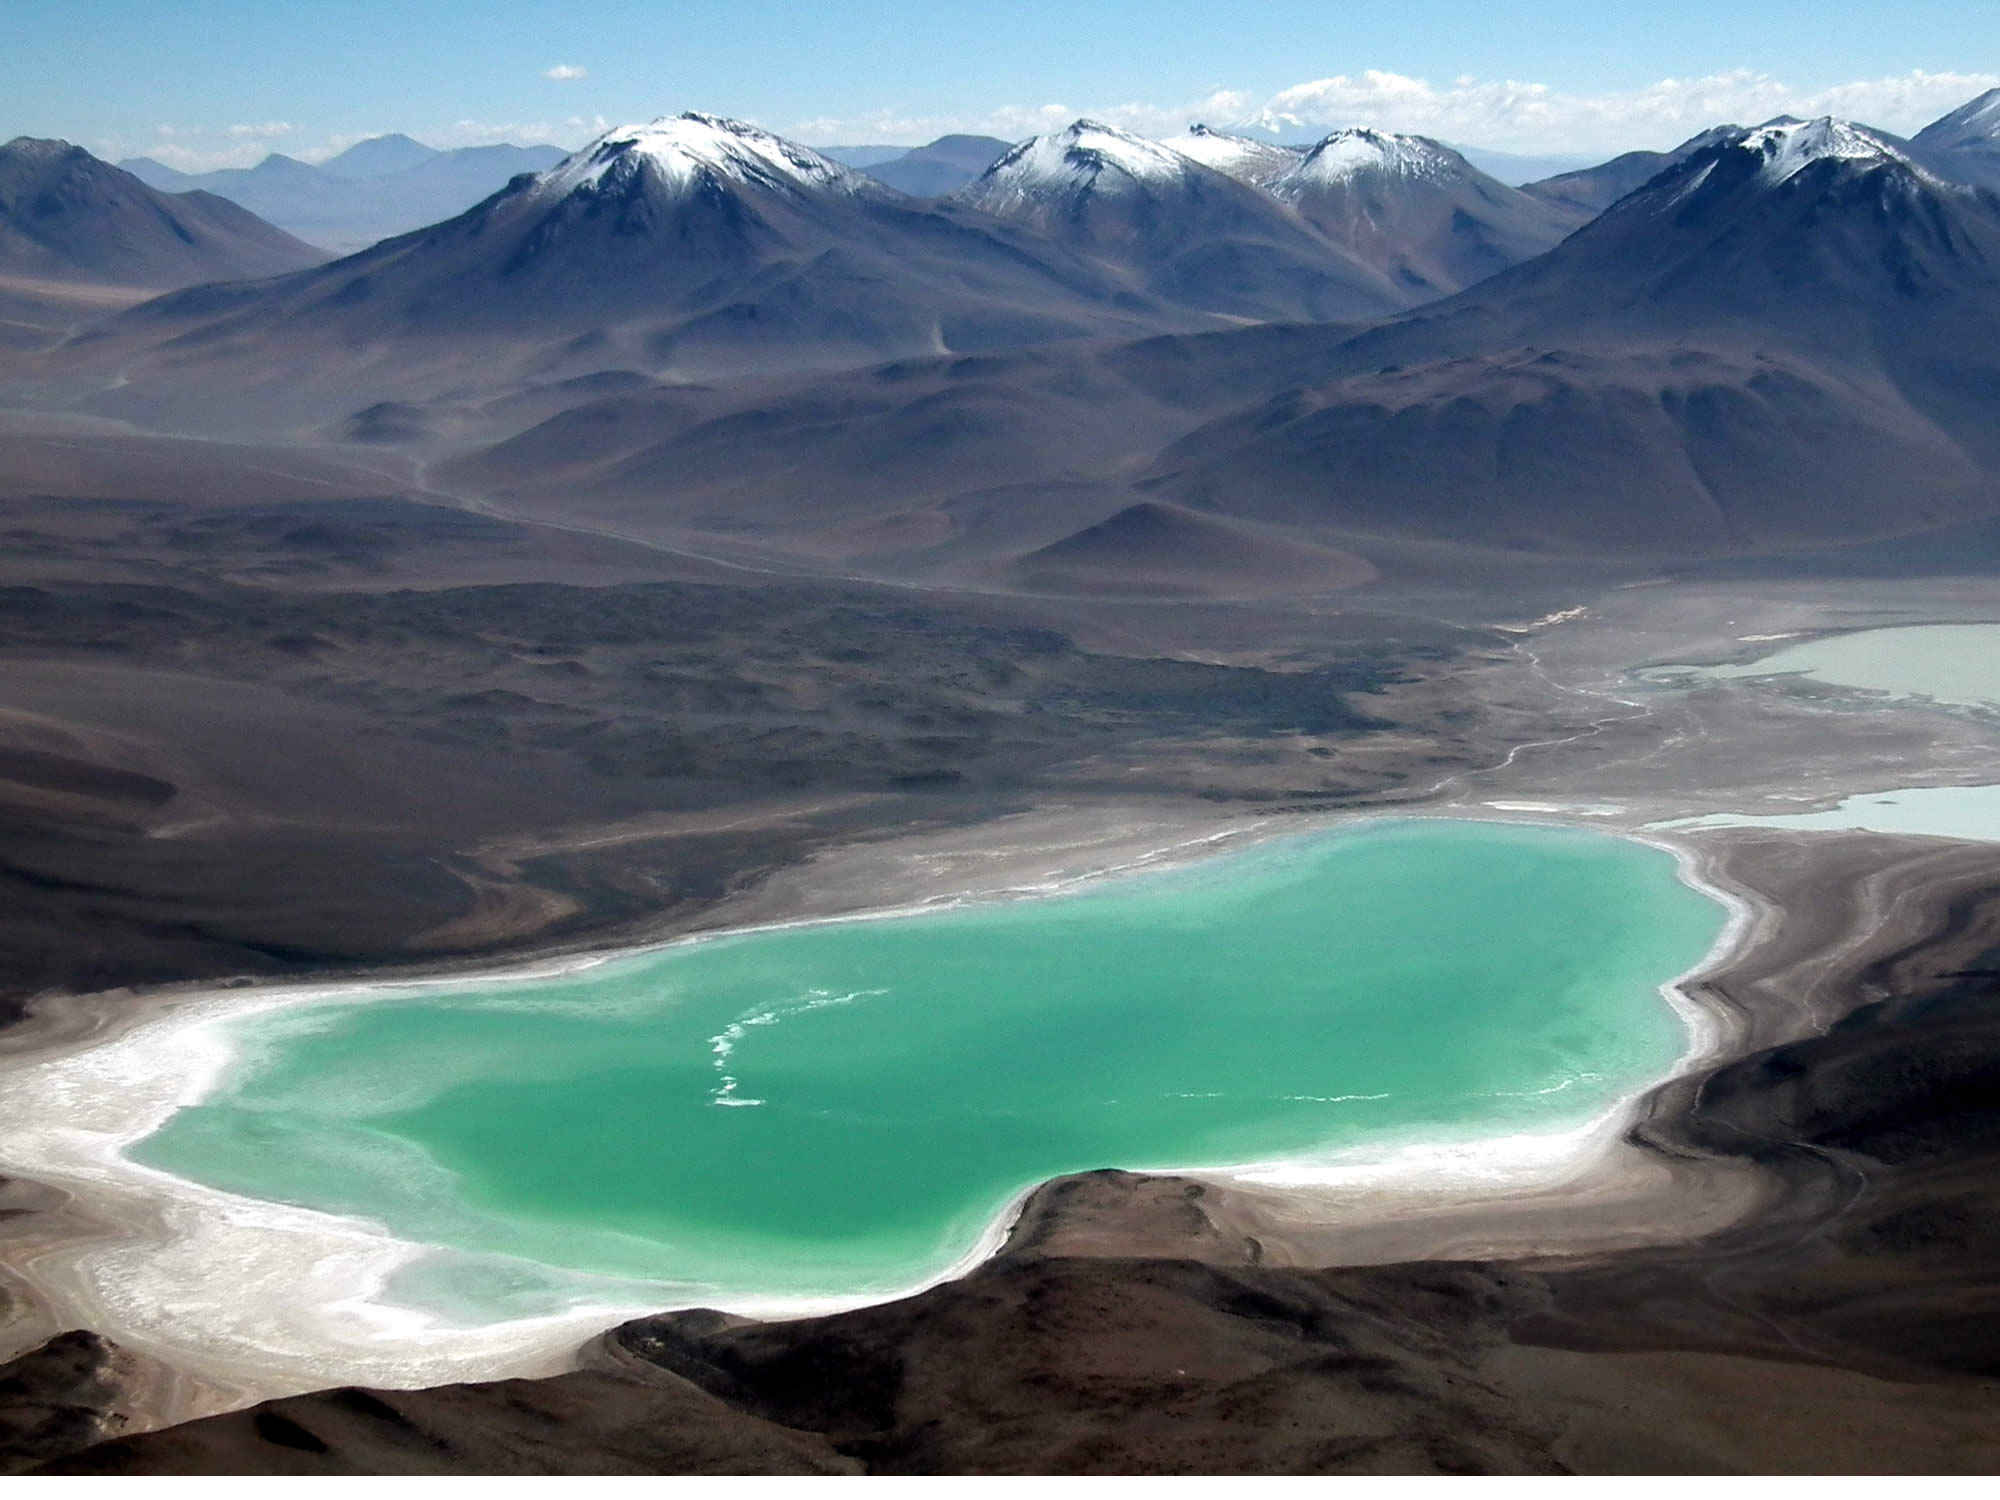 The Green Lagoon, as seen from the top of the Licancabur volcano